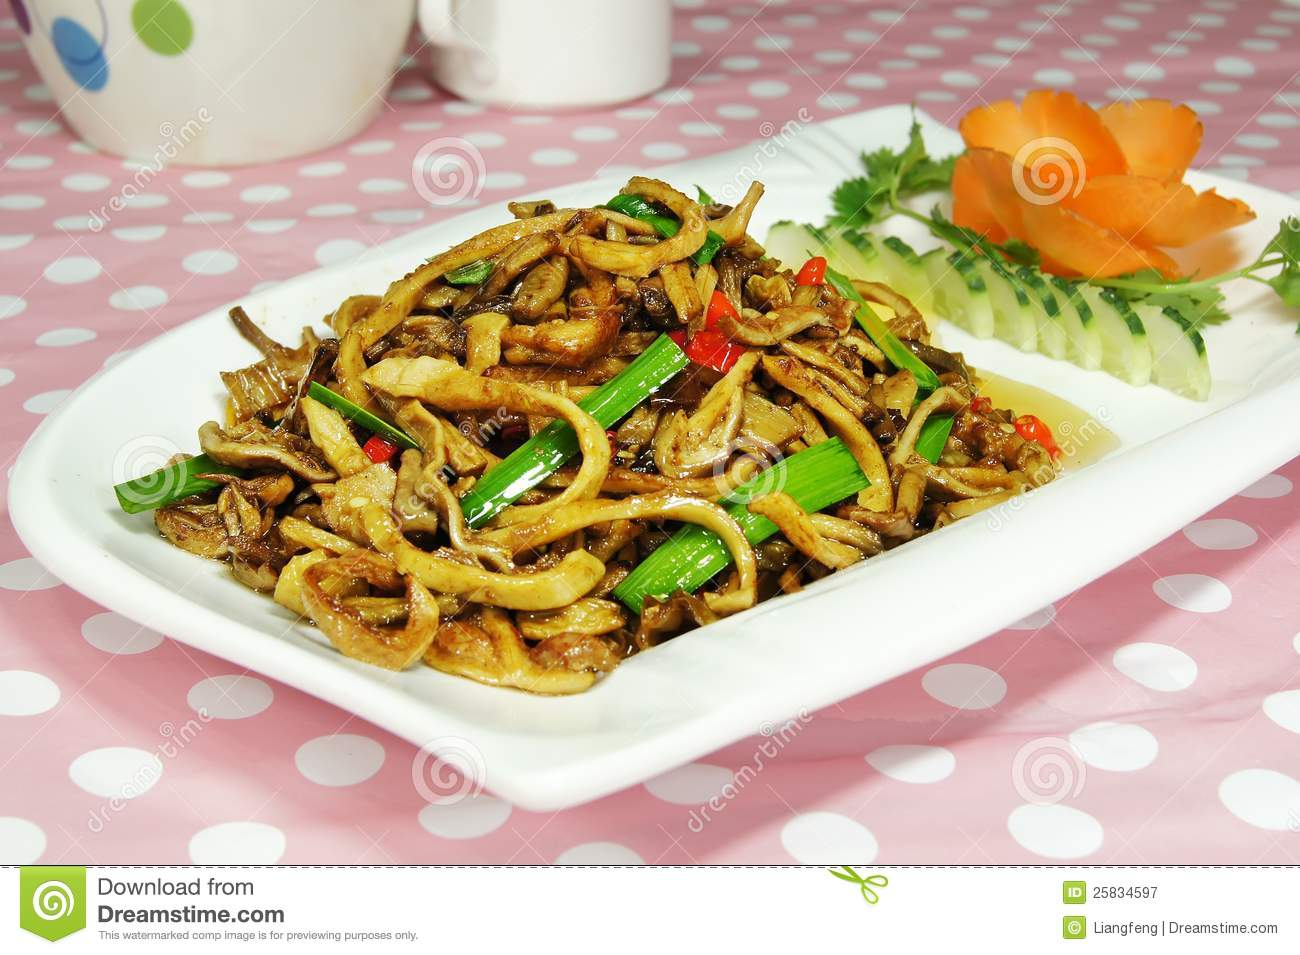 Delicious chinese food royalty free stock photography image 25834597 - Delicious chinese cuisine ...